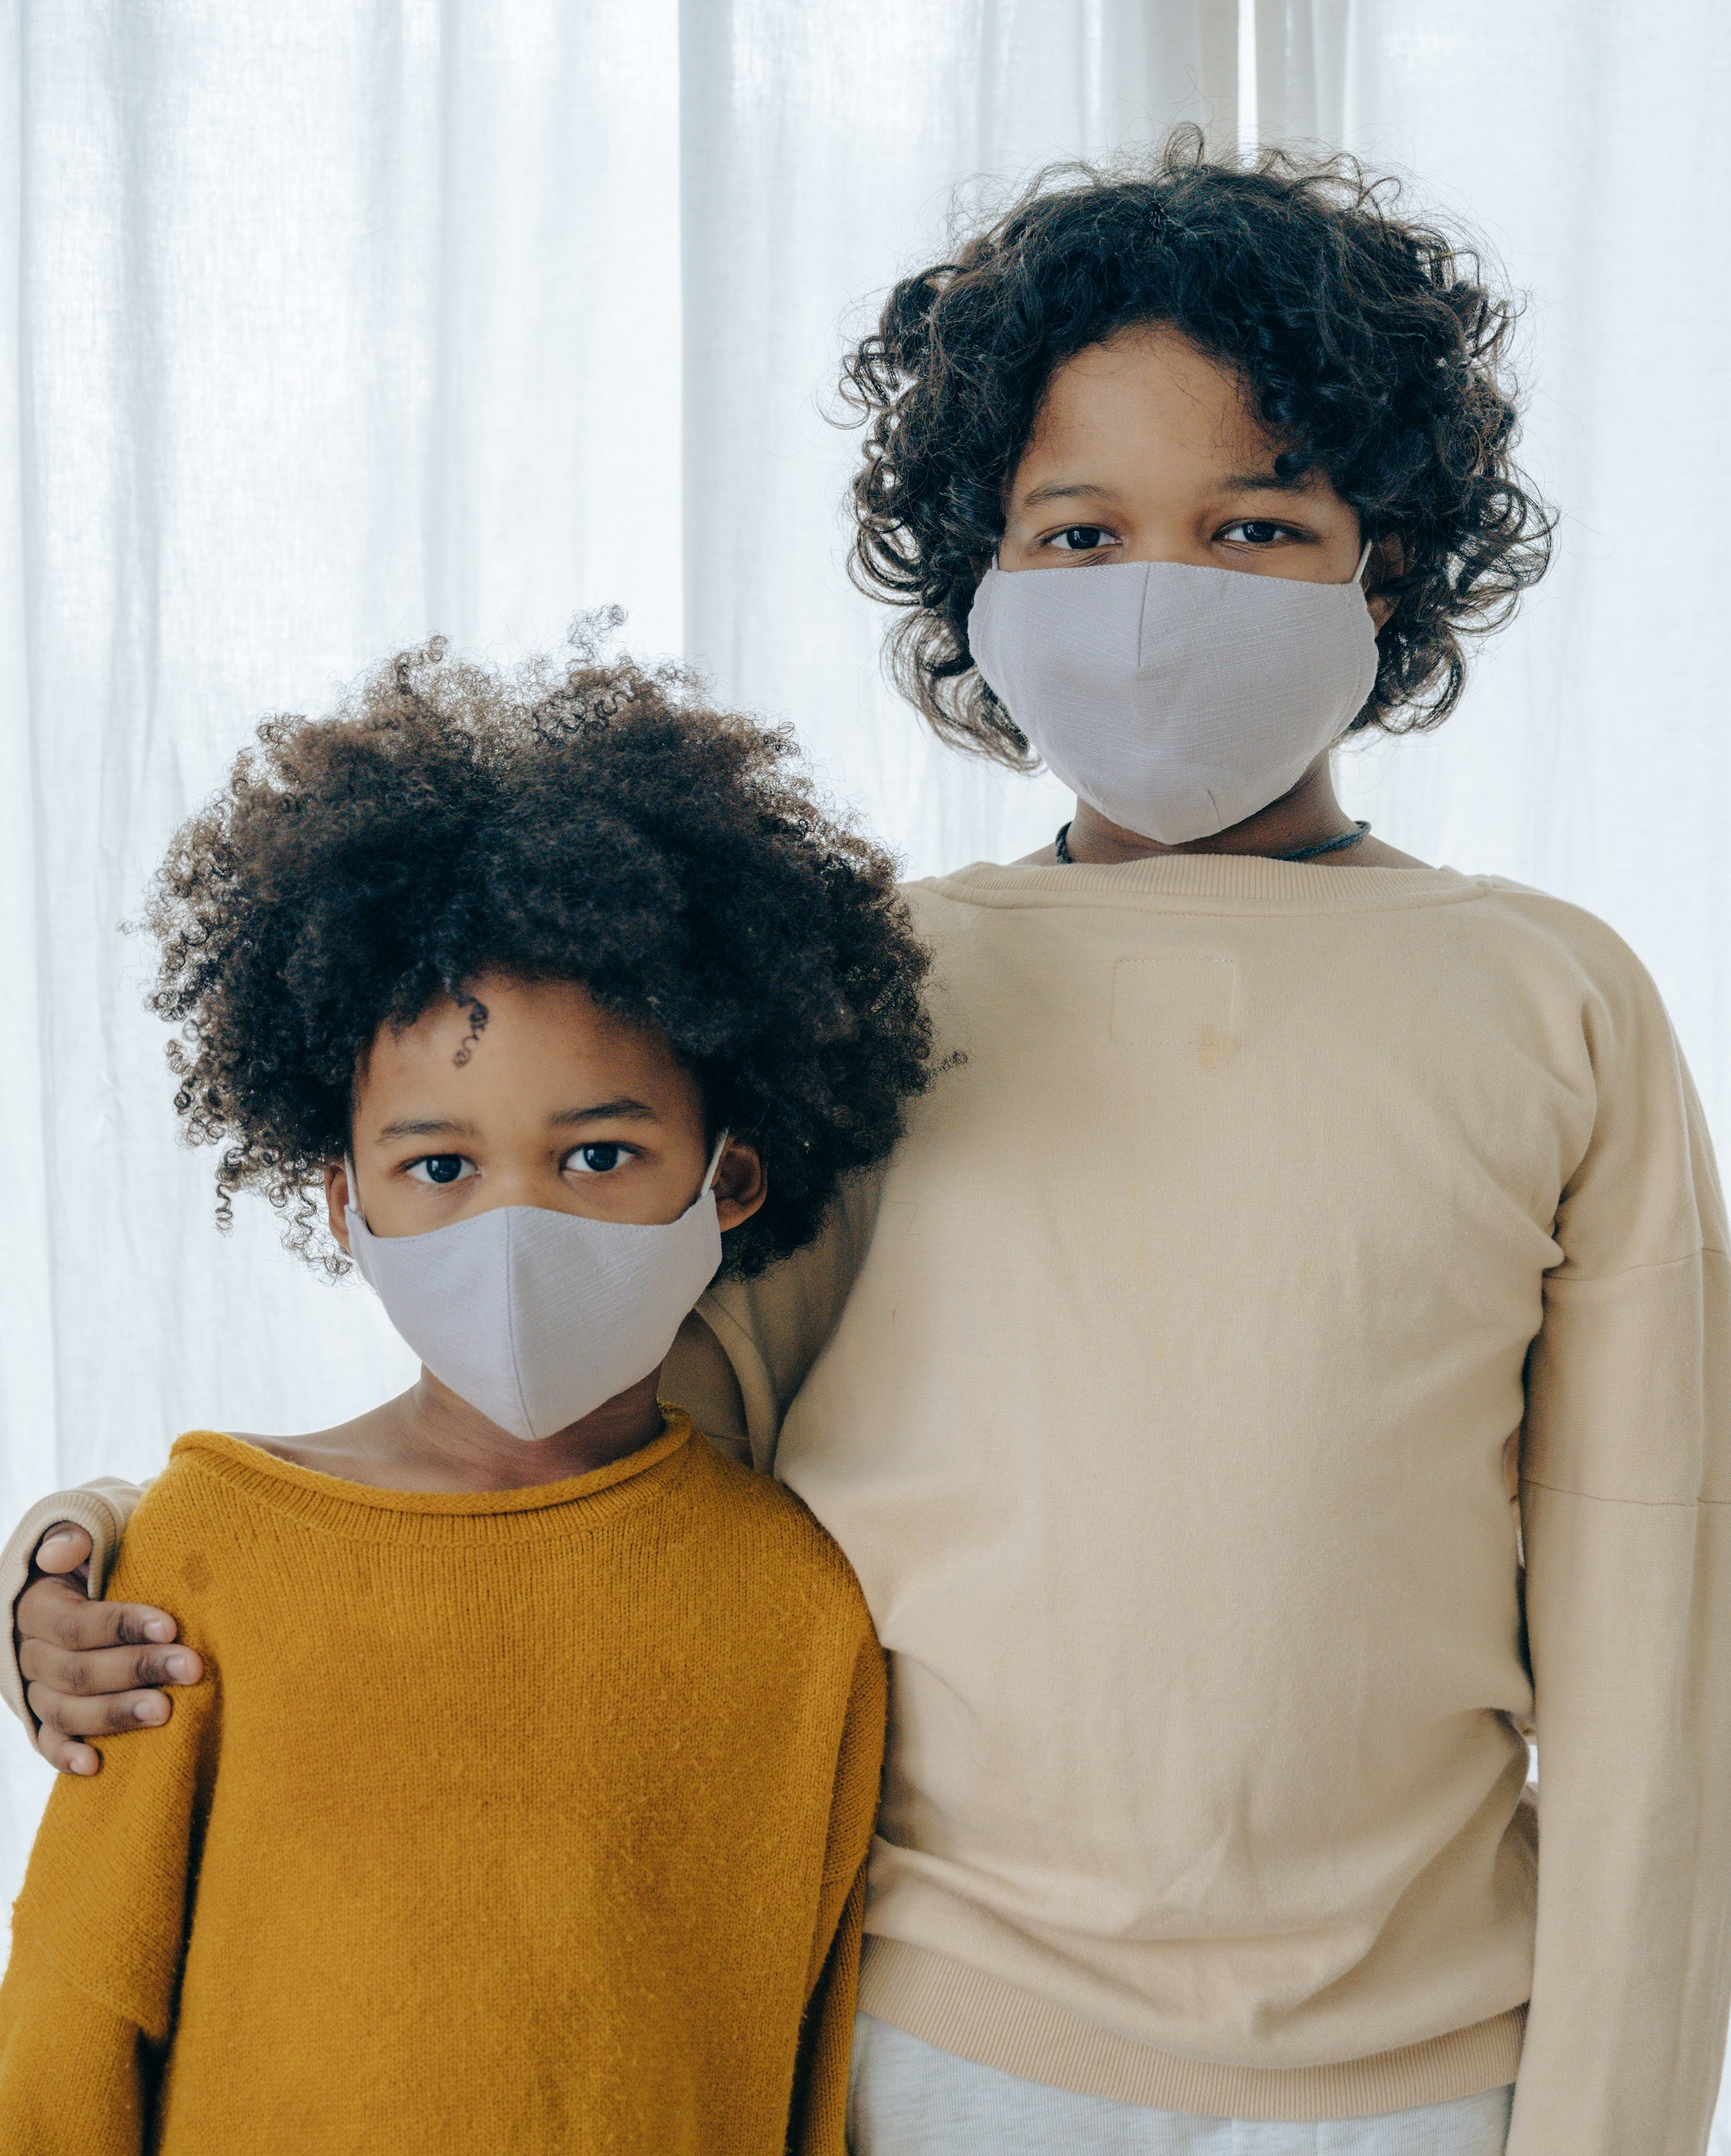 Photo of two siblings standing side by side, dressed in pastel colors and wearing face masks.